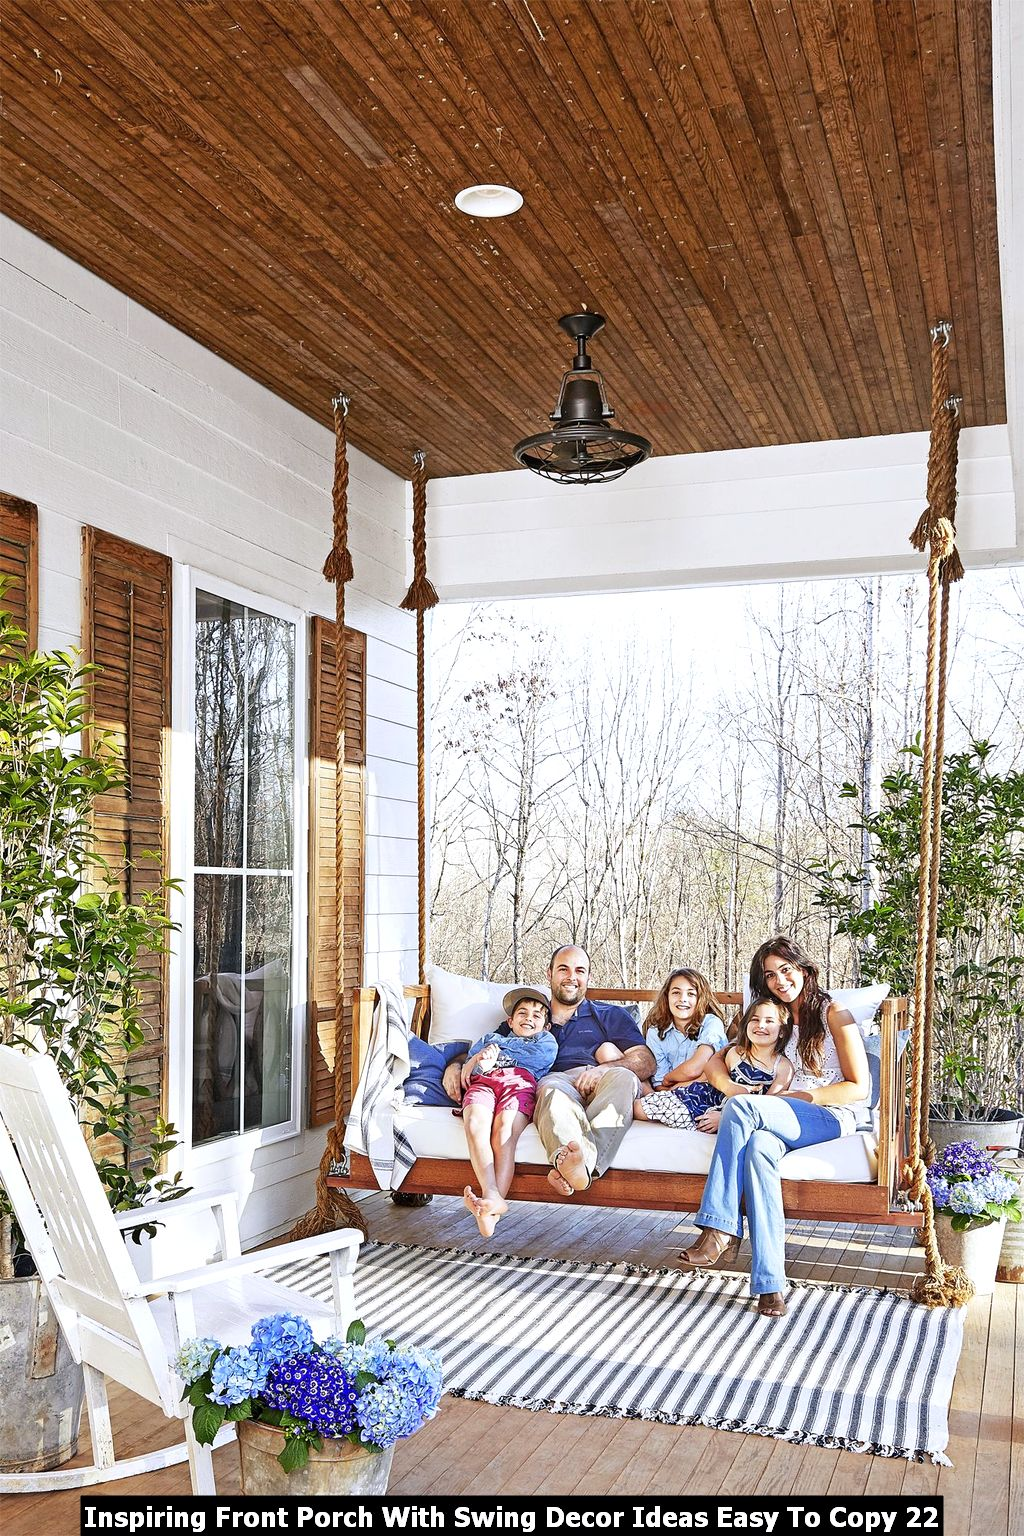 Inspiring Front Porch With Swing Decor Ideas Easy To Copy 22